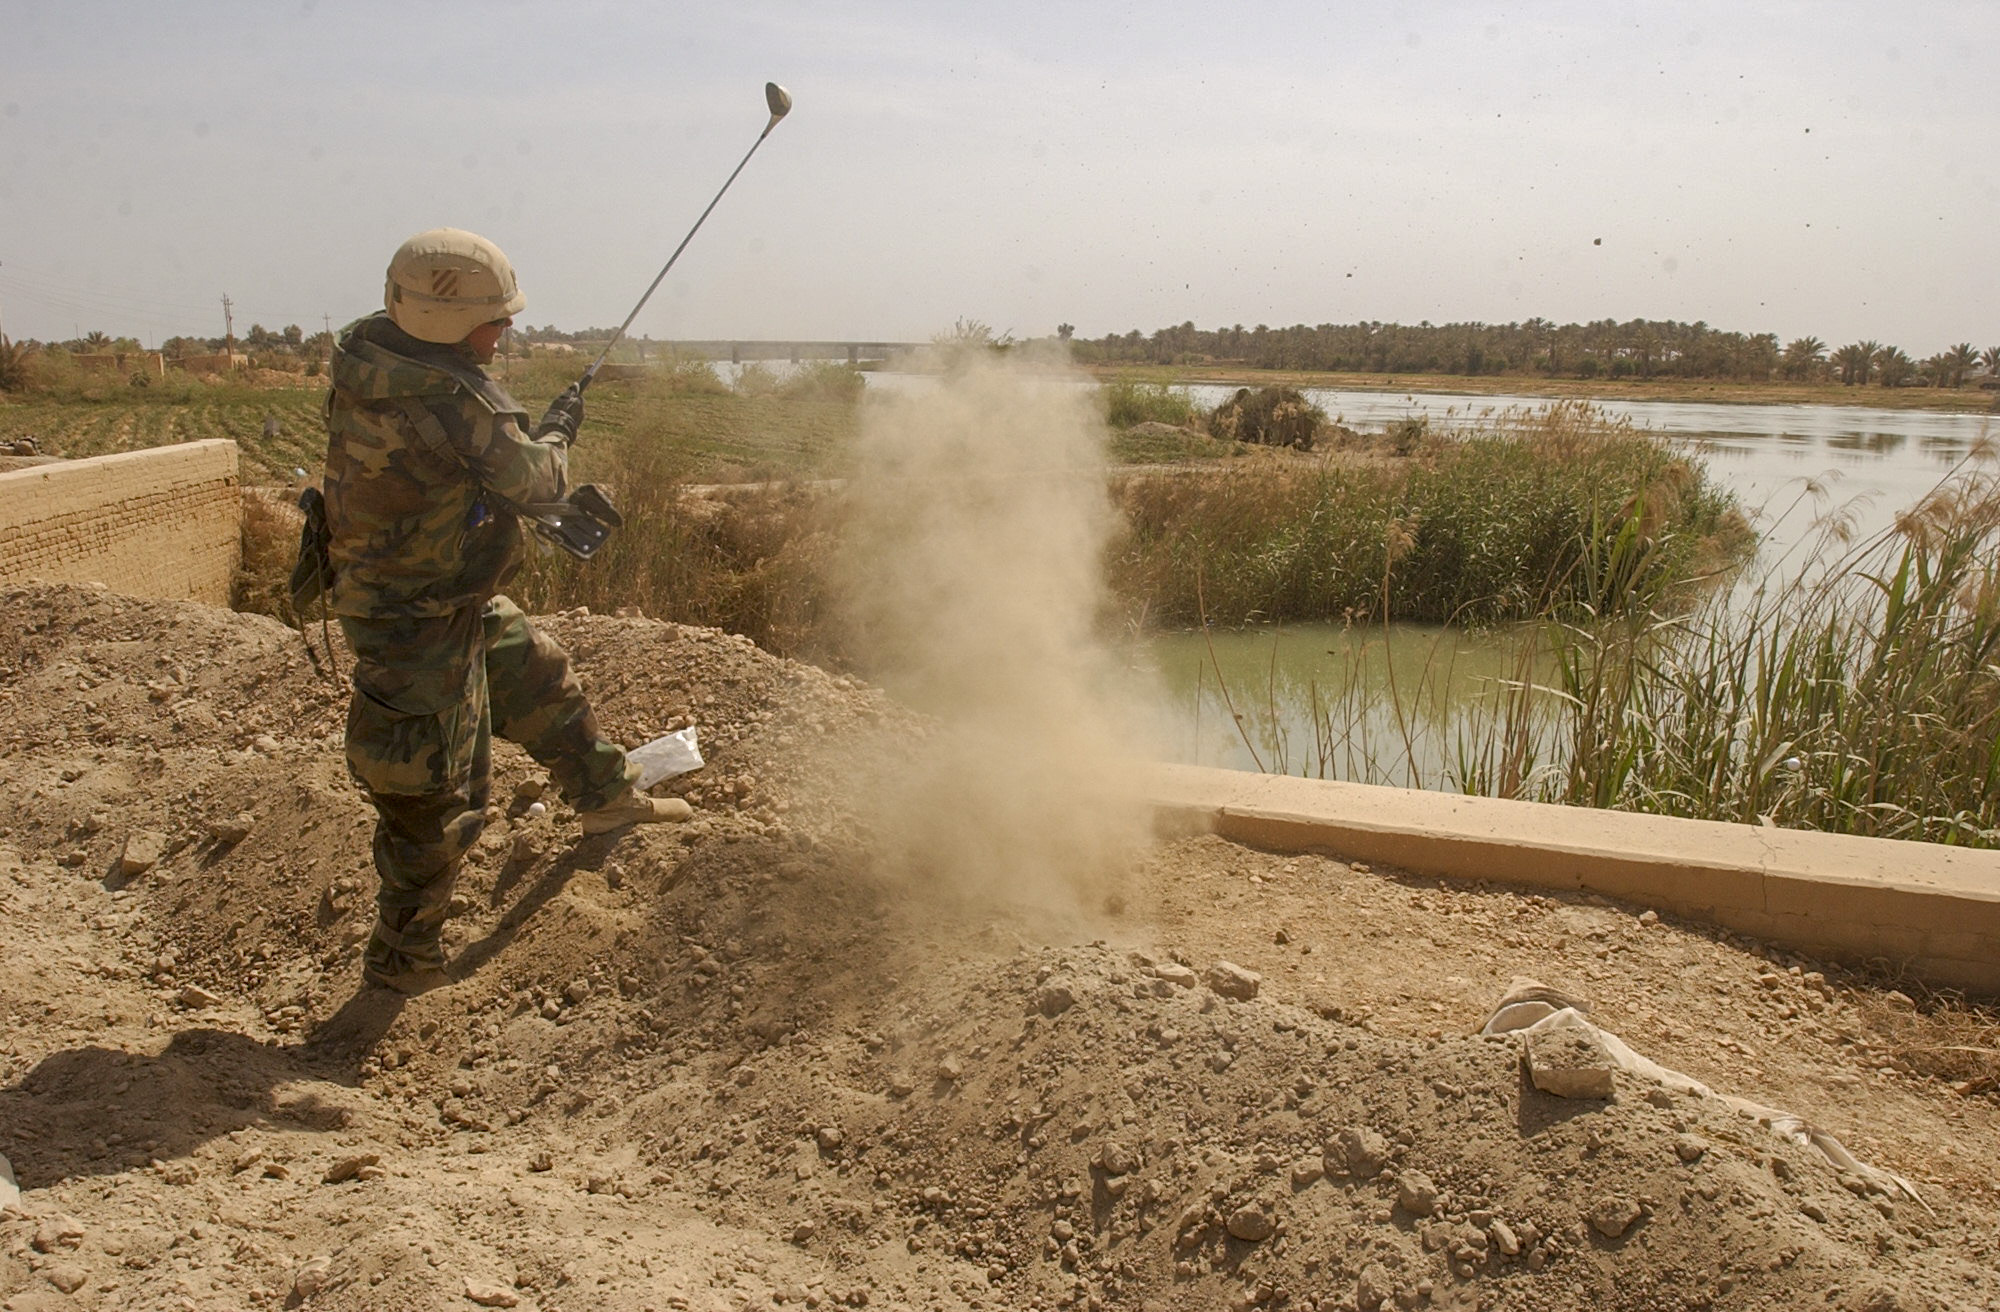 Major Brad Gavle, 39 from Decorah, Iowa of the 3rd Squadron, 7th Cavalry Regiment takes a moment during a pause in combat to hit a golf ball into the Euphrates River on April 3, 2003, 20km south of Baghdad, Iraq. A major assault was launched last night by the 3rd Infantry Division as the division makes it way towards Baghdad. (Warren Zinn/Army Times)